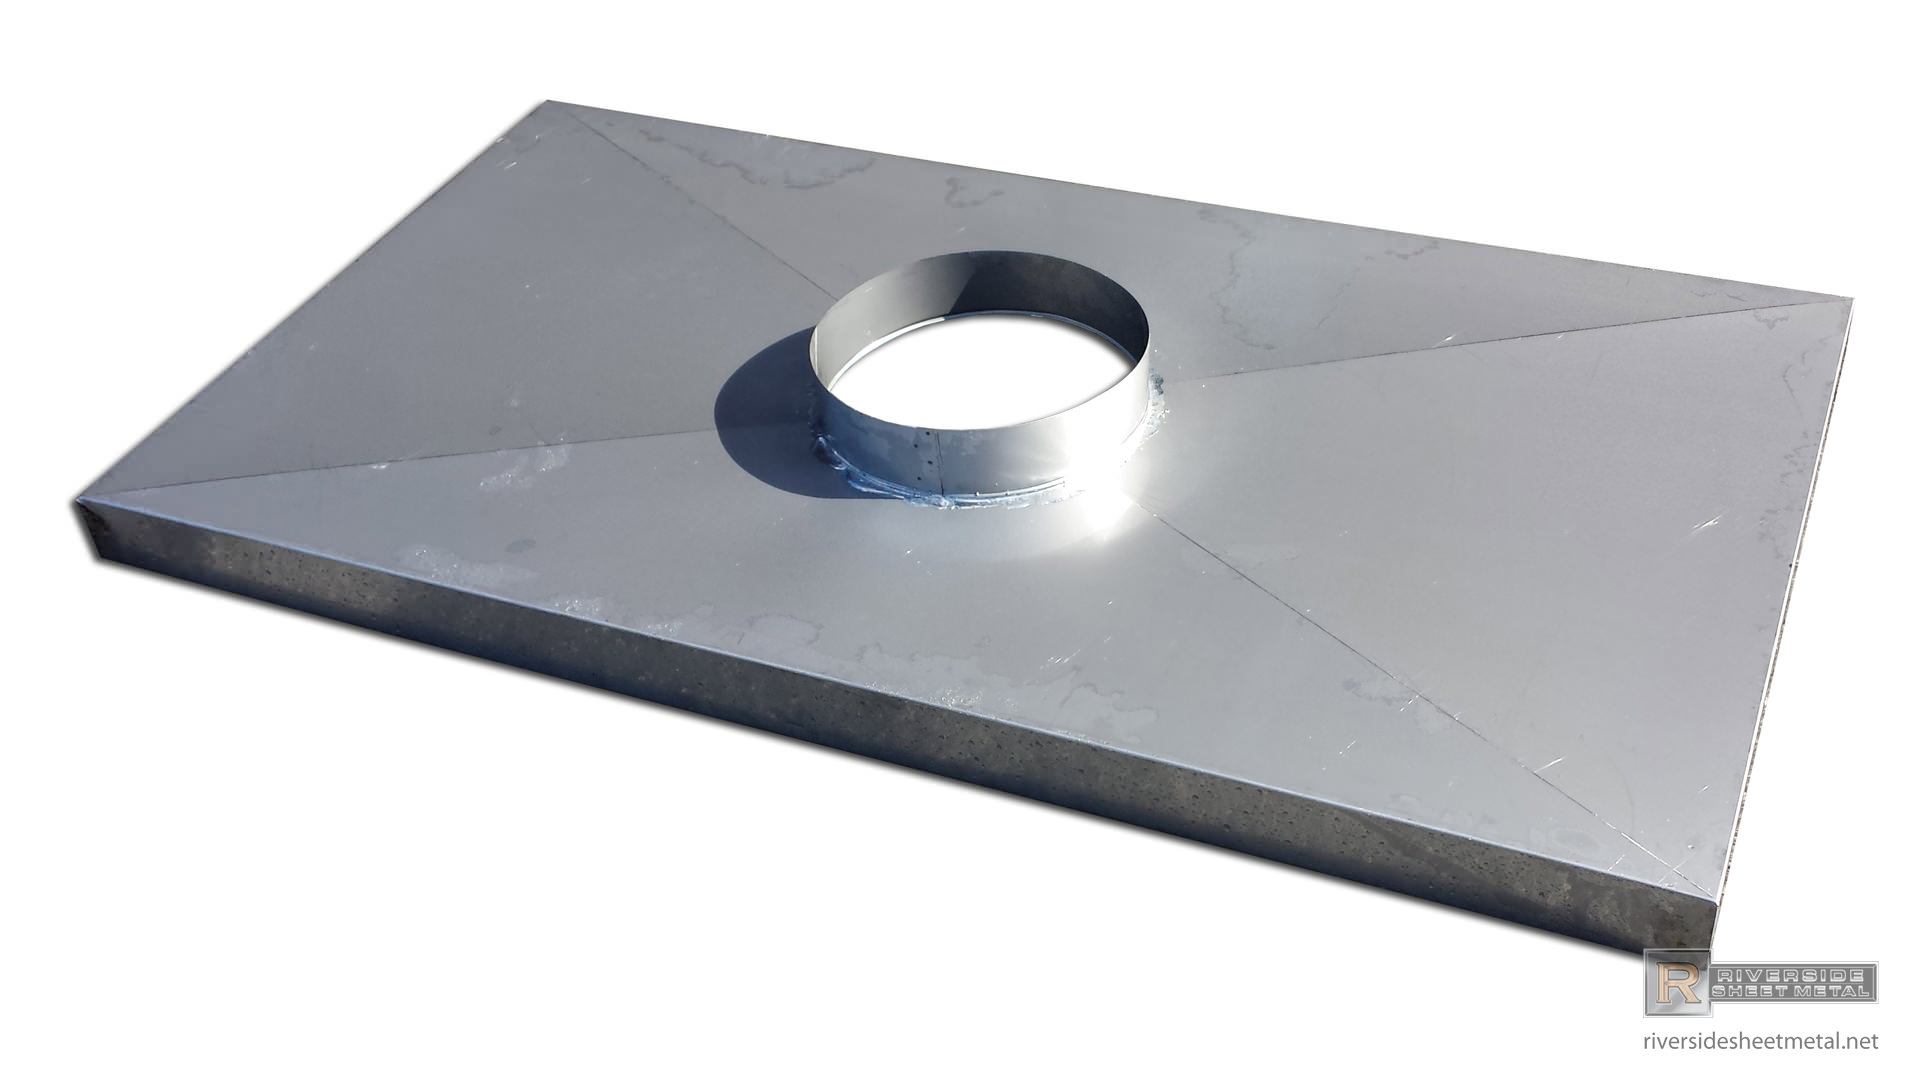 Weathervanes >> Chimney chase cover with flue vent hole and x-bend - #CH005